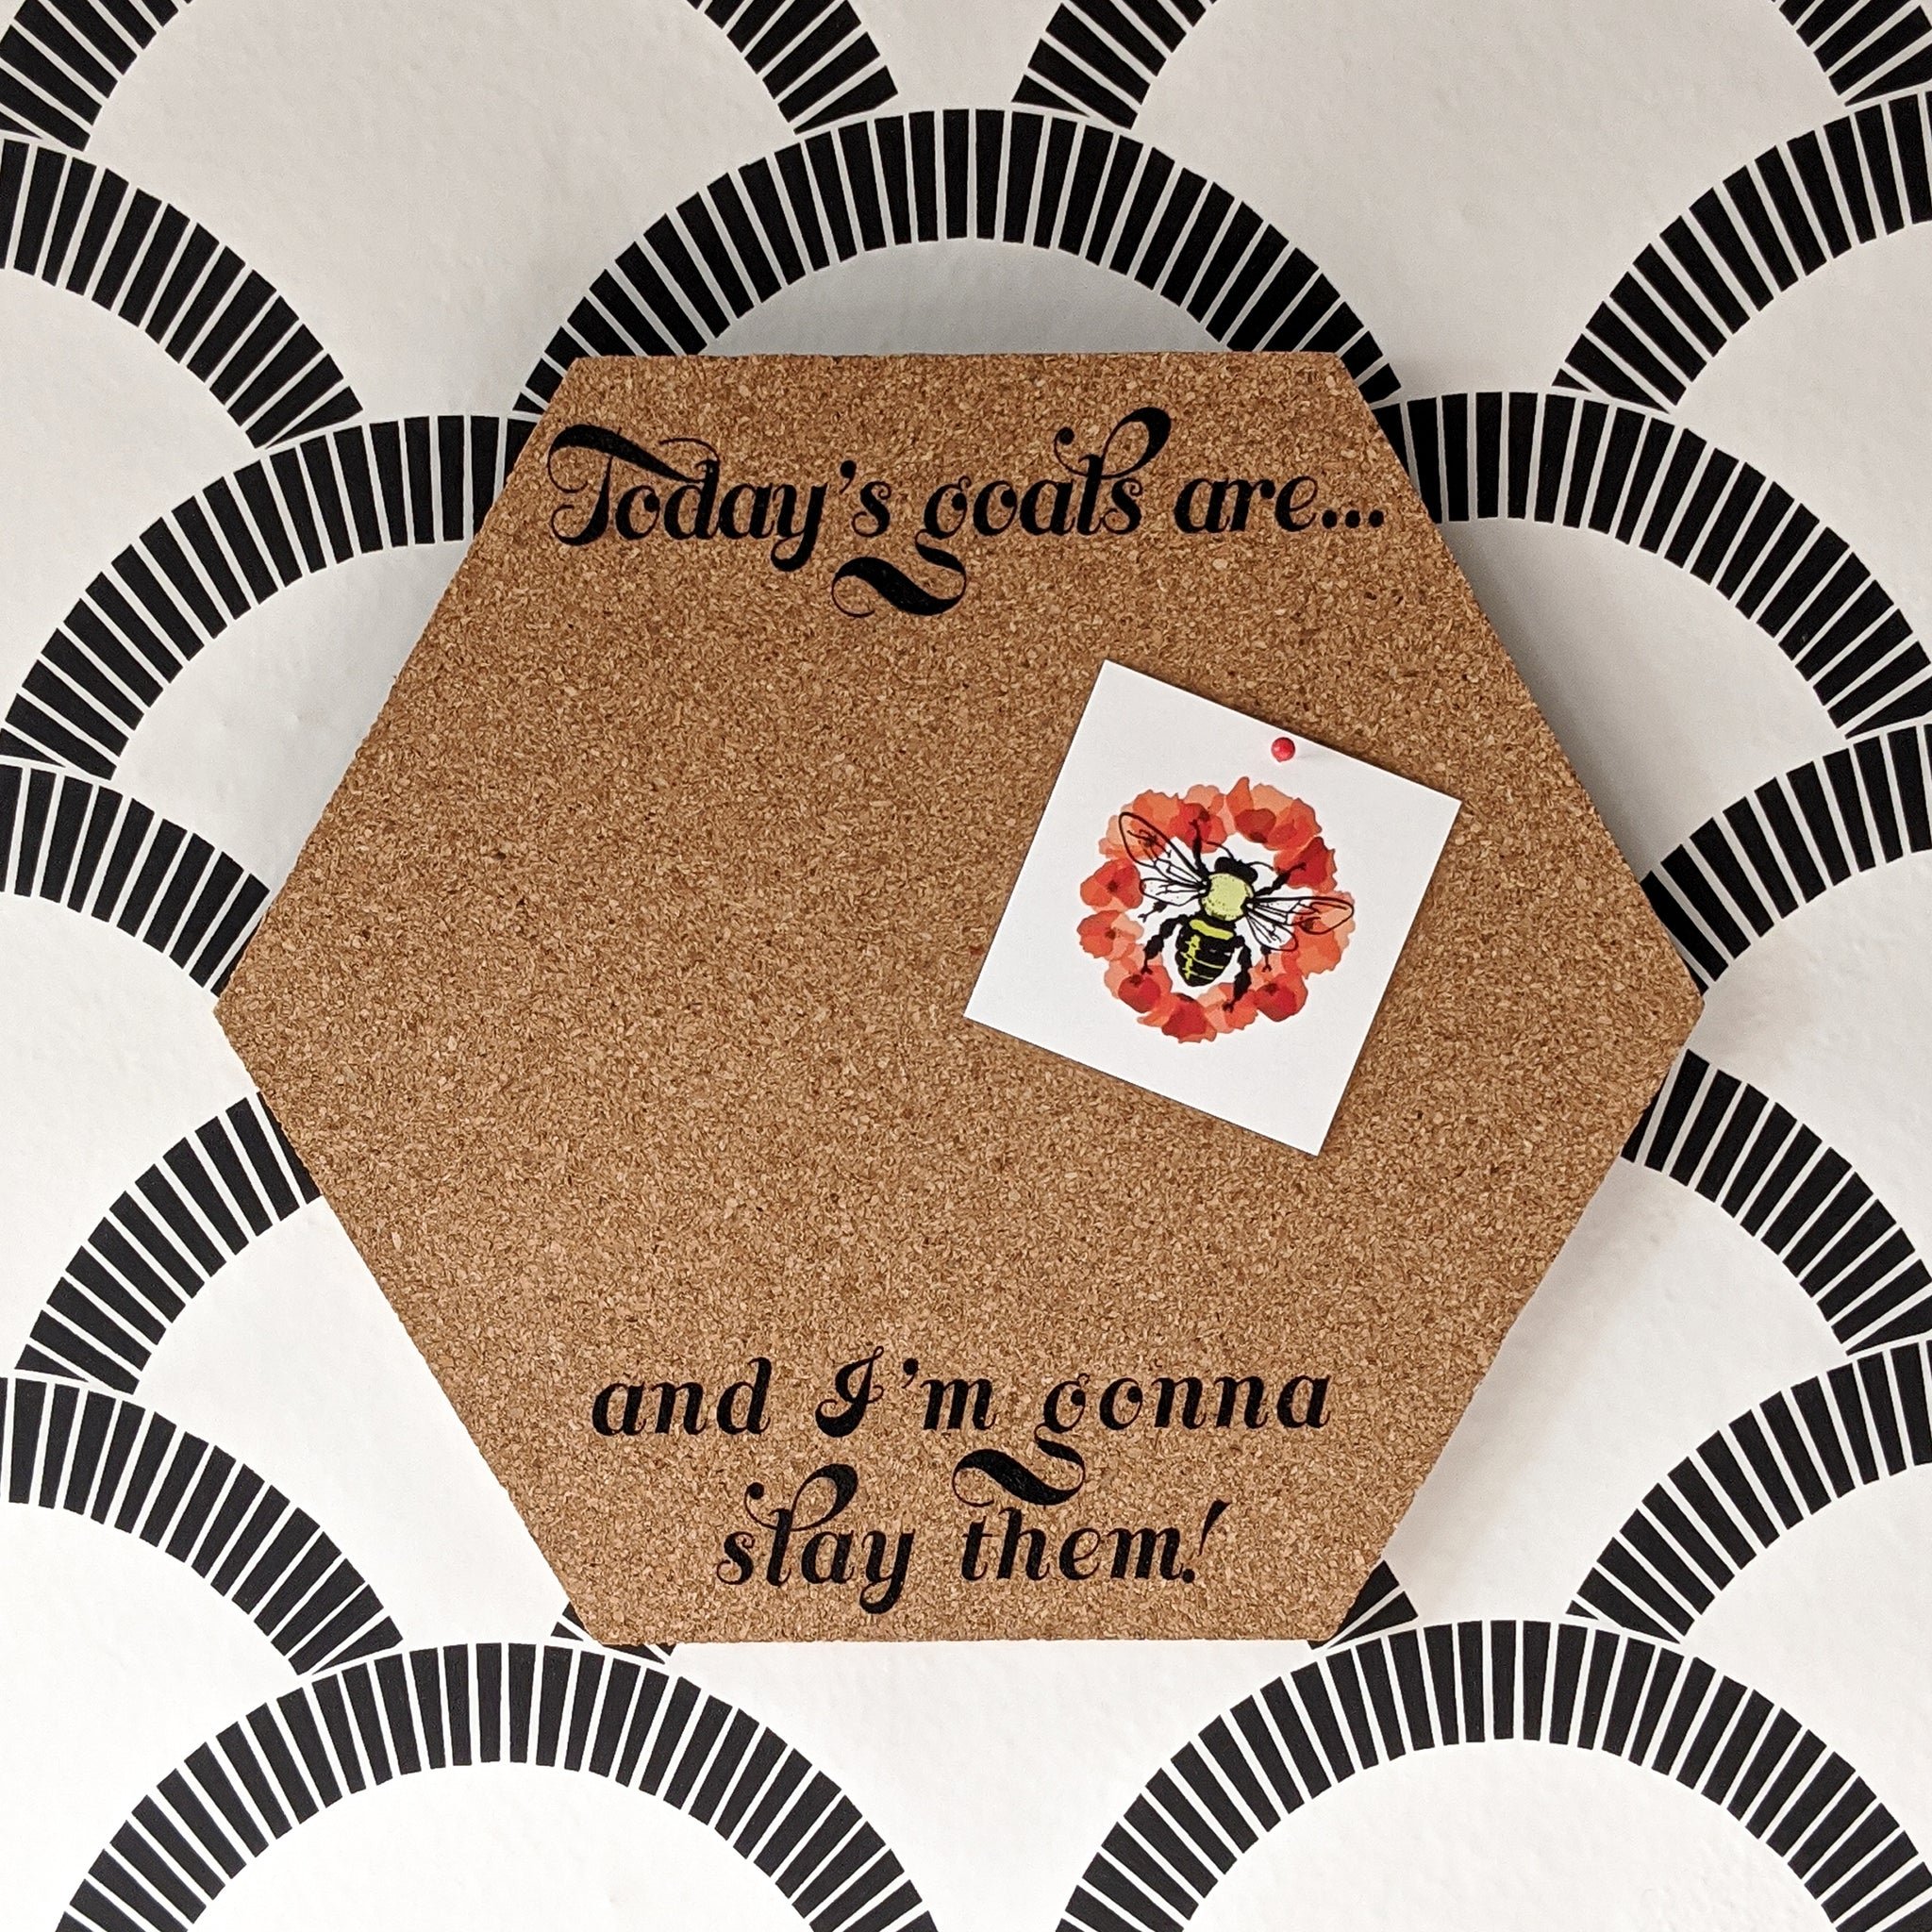 Slaying Today's Goals Hexagon Cork Board